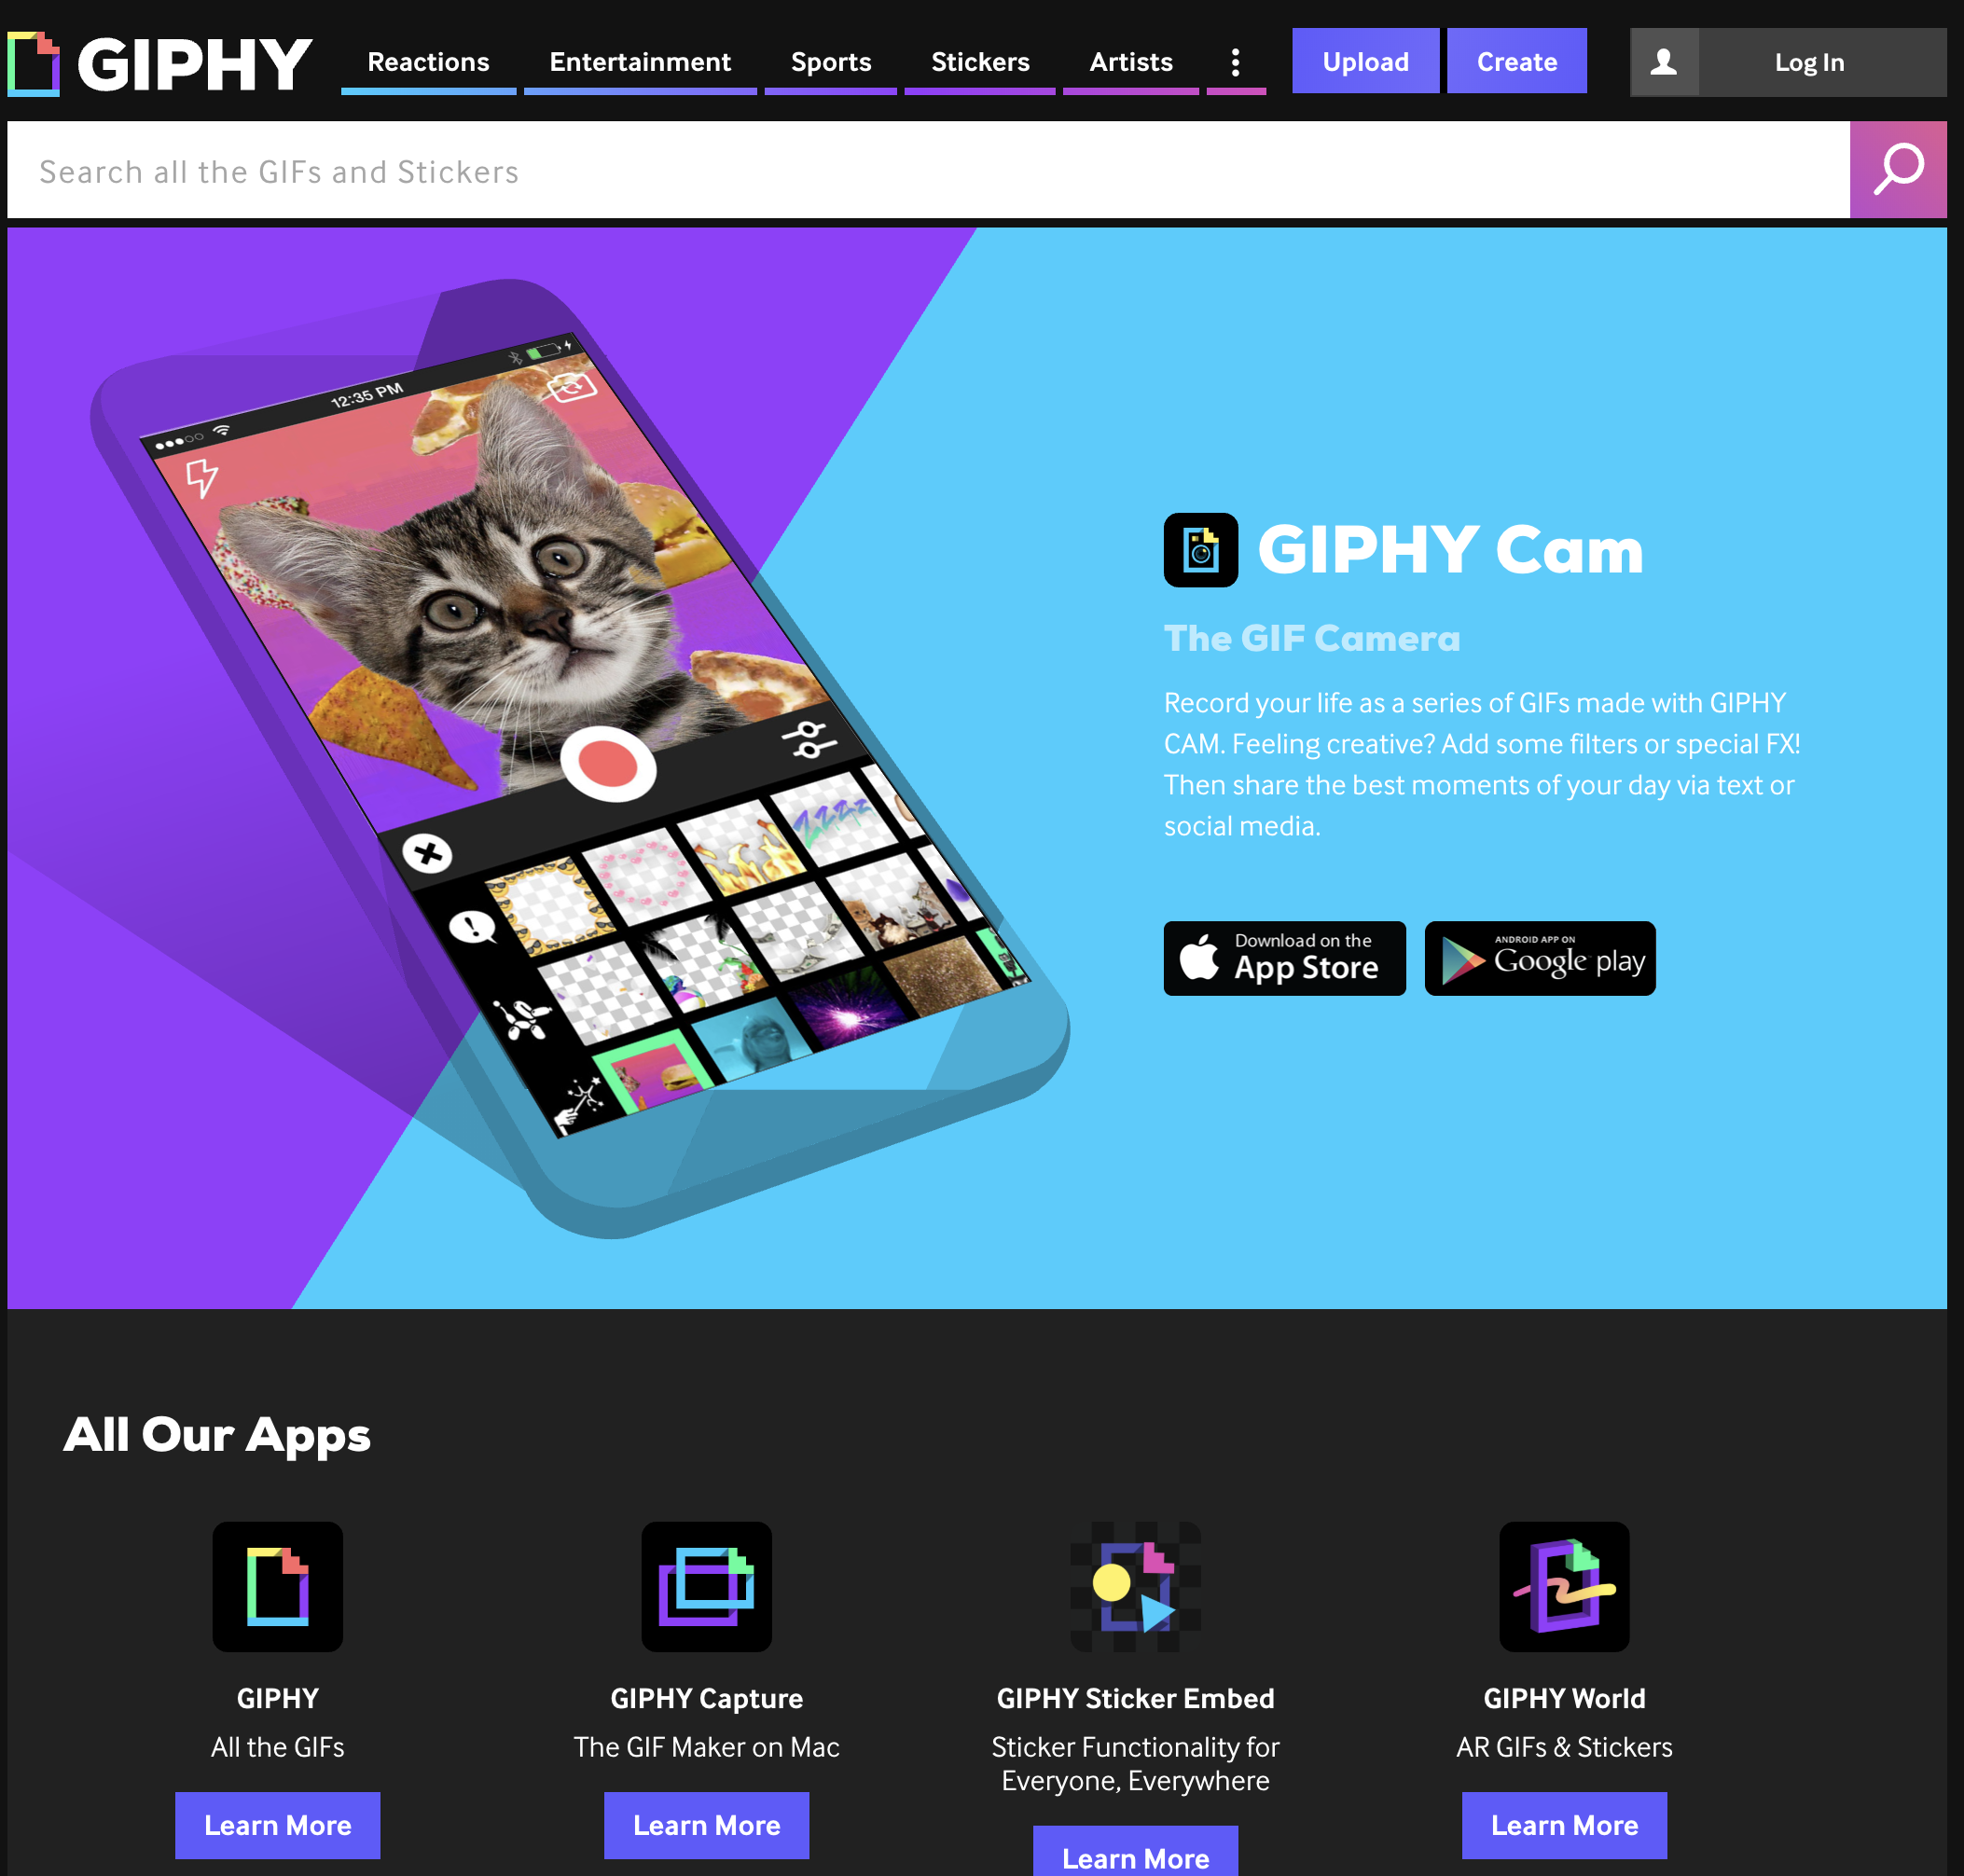 giphy cam app